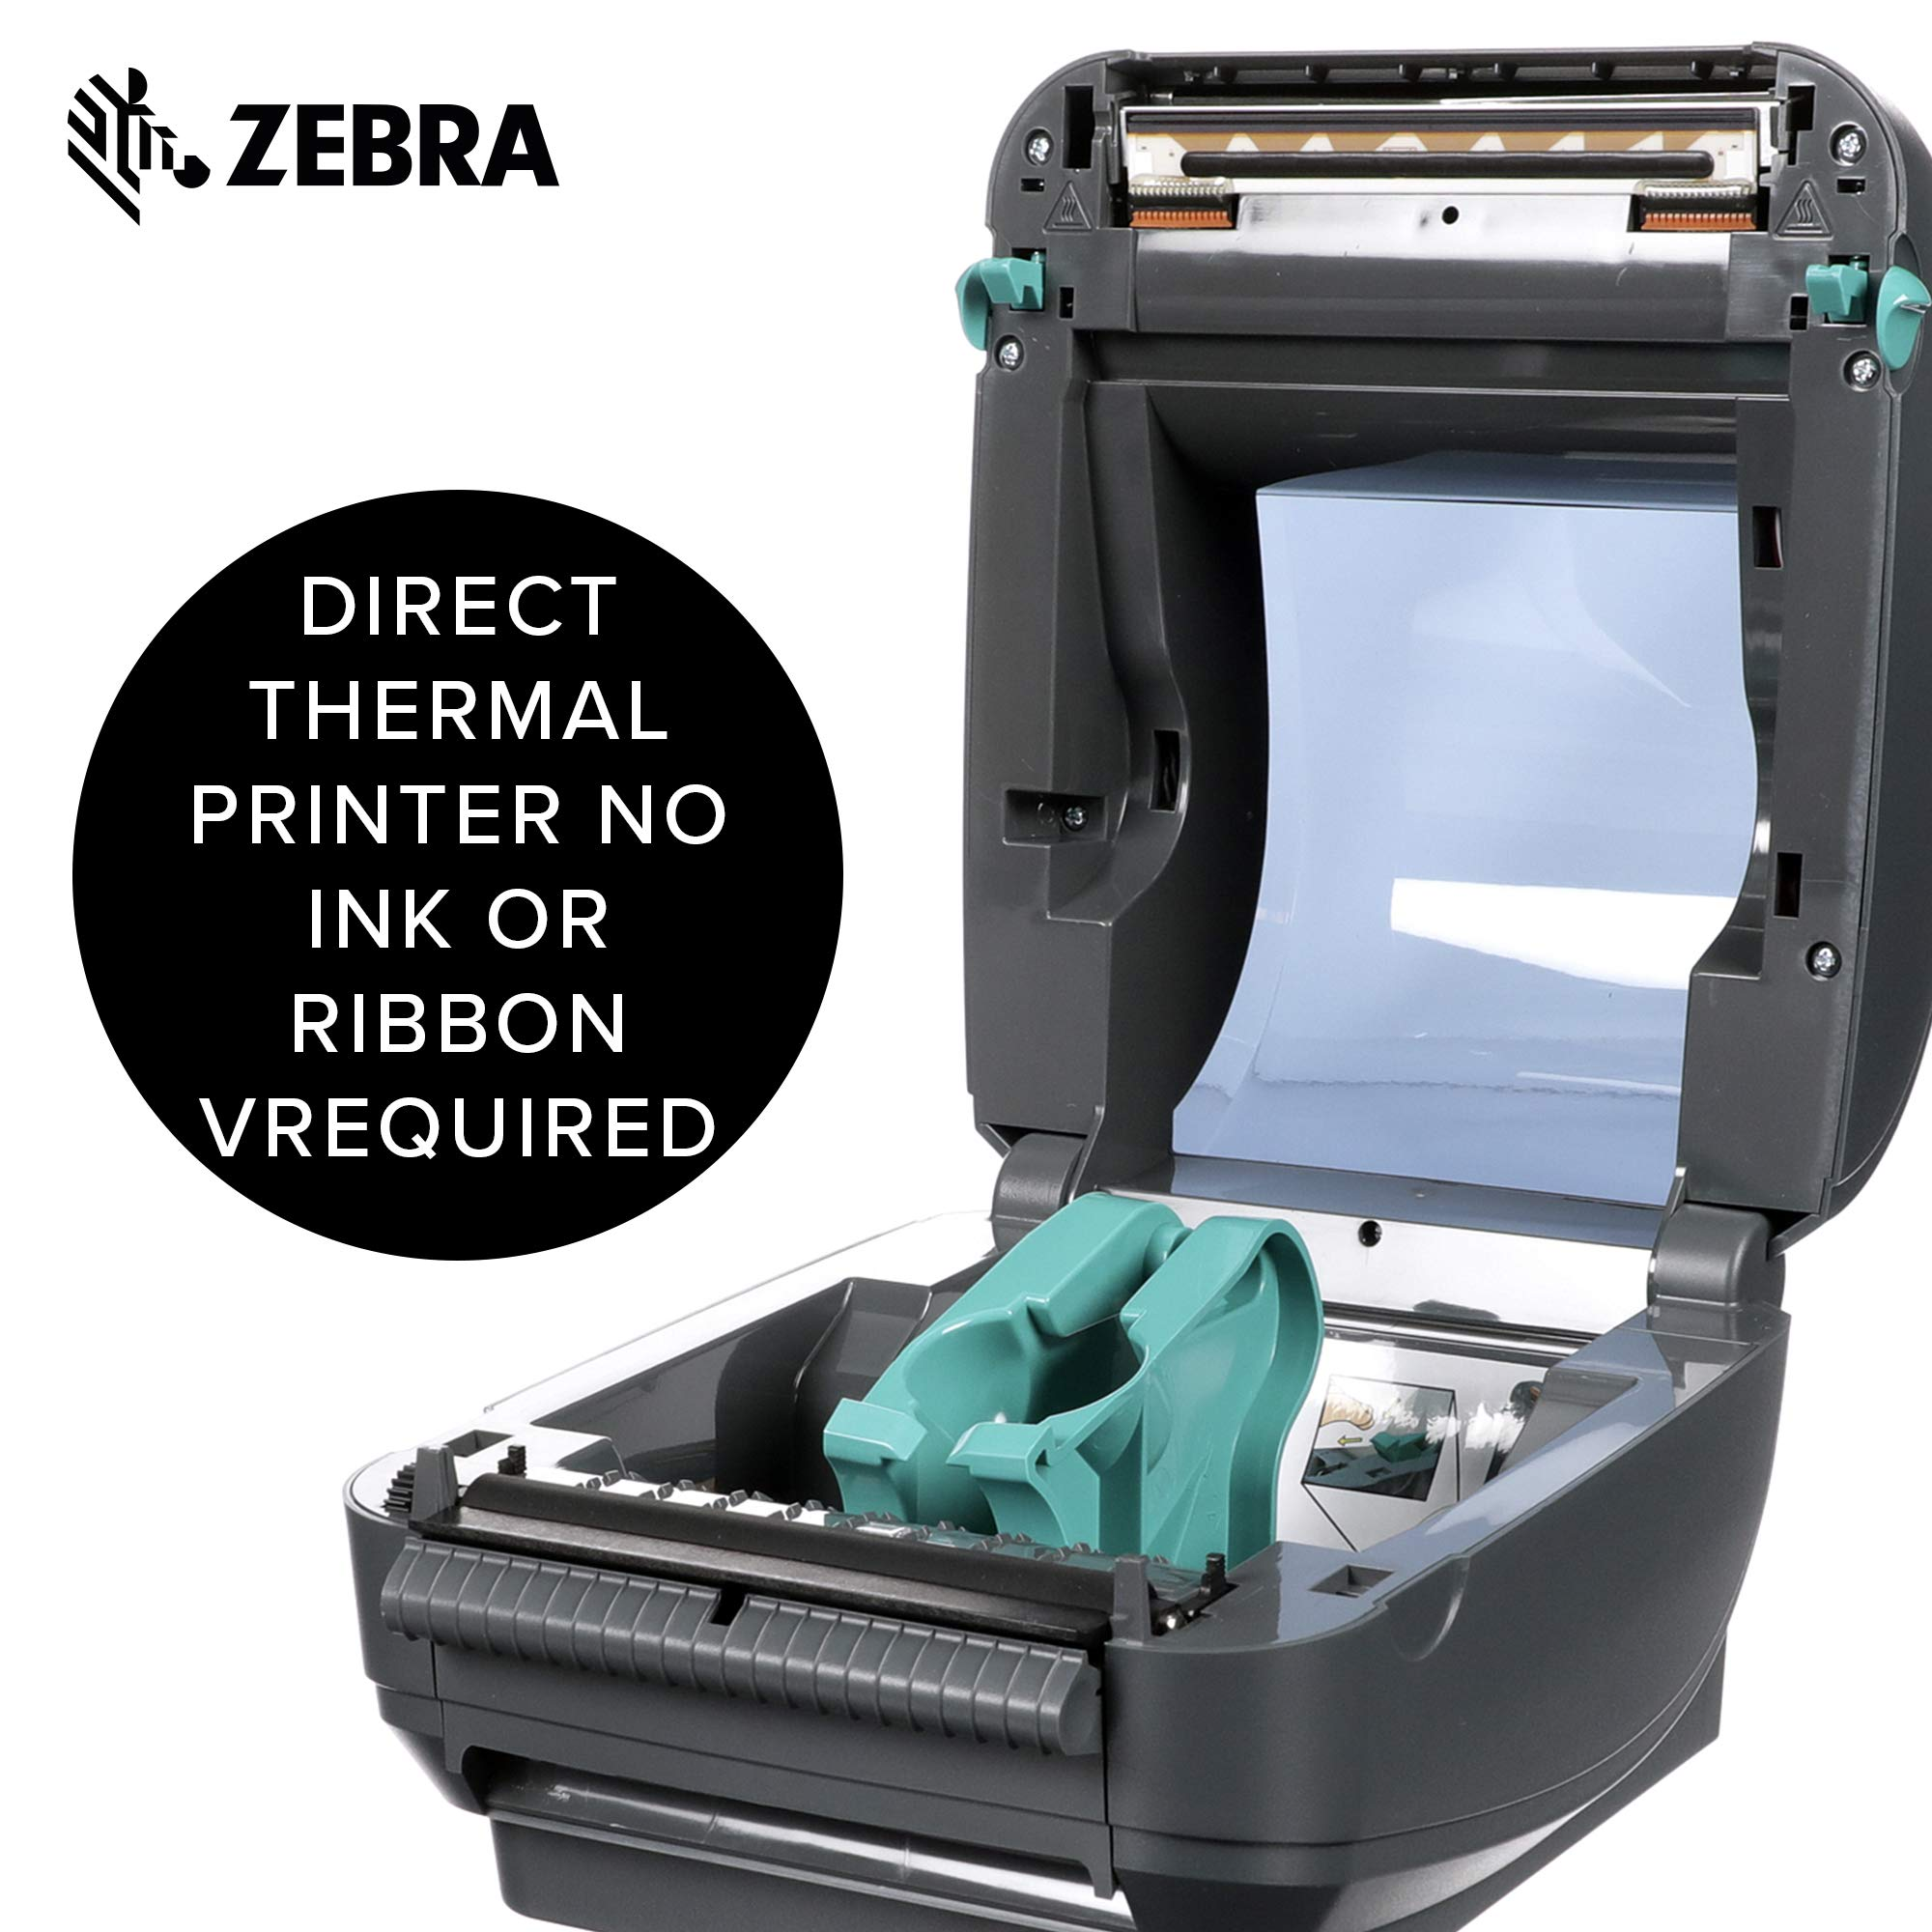 Zebra - GX420d Direct Thermal Desktop Printer for Labels, Receipts, Barcodes, Tags, and Wrist Bands - Print Width of 4 in - USB, Serial, and Parallel Port Connectivity (Includes Peeler) by ZebraNet (Image #4)